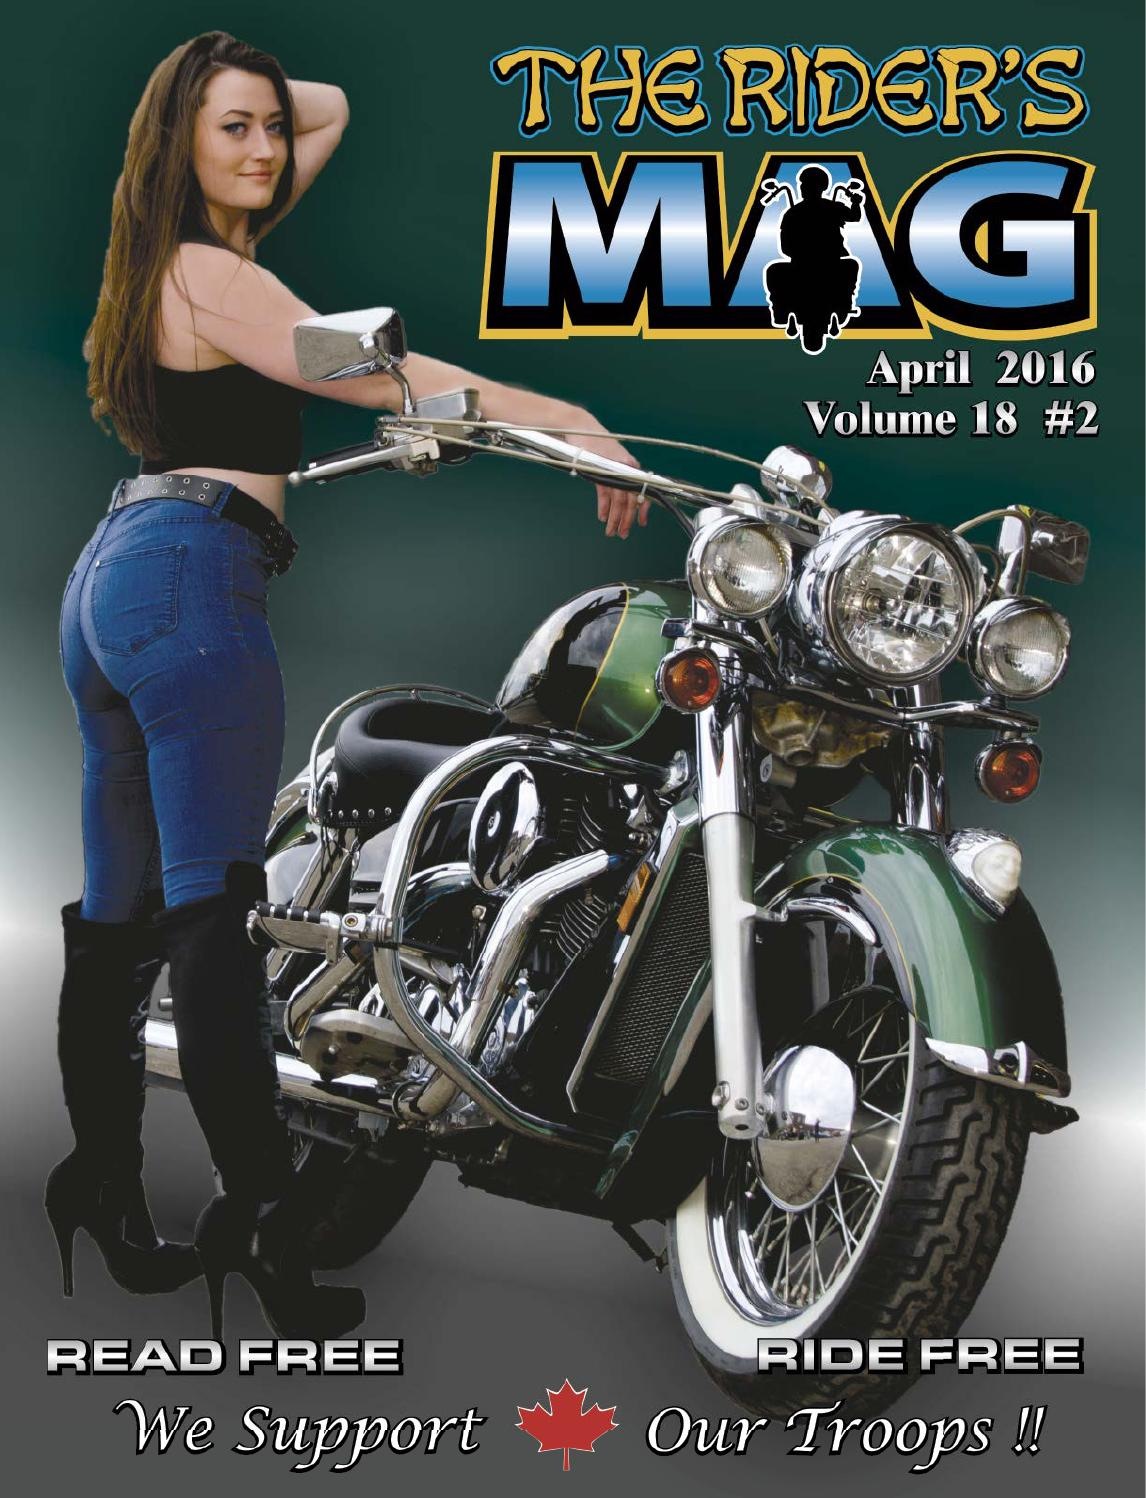 2016 04 the riders mag v18 n02 for web by the riders mag issuu kristyandbryce Image collections